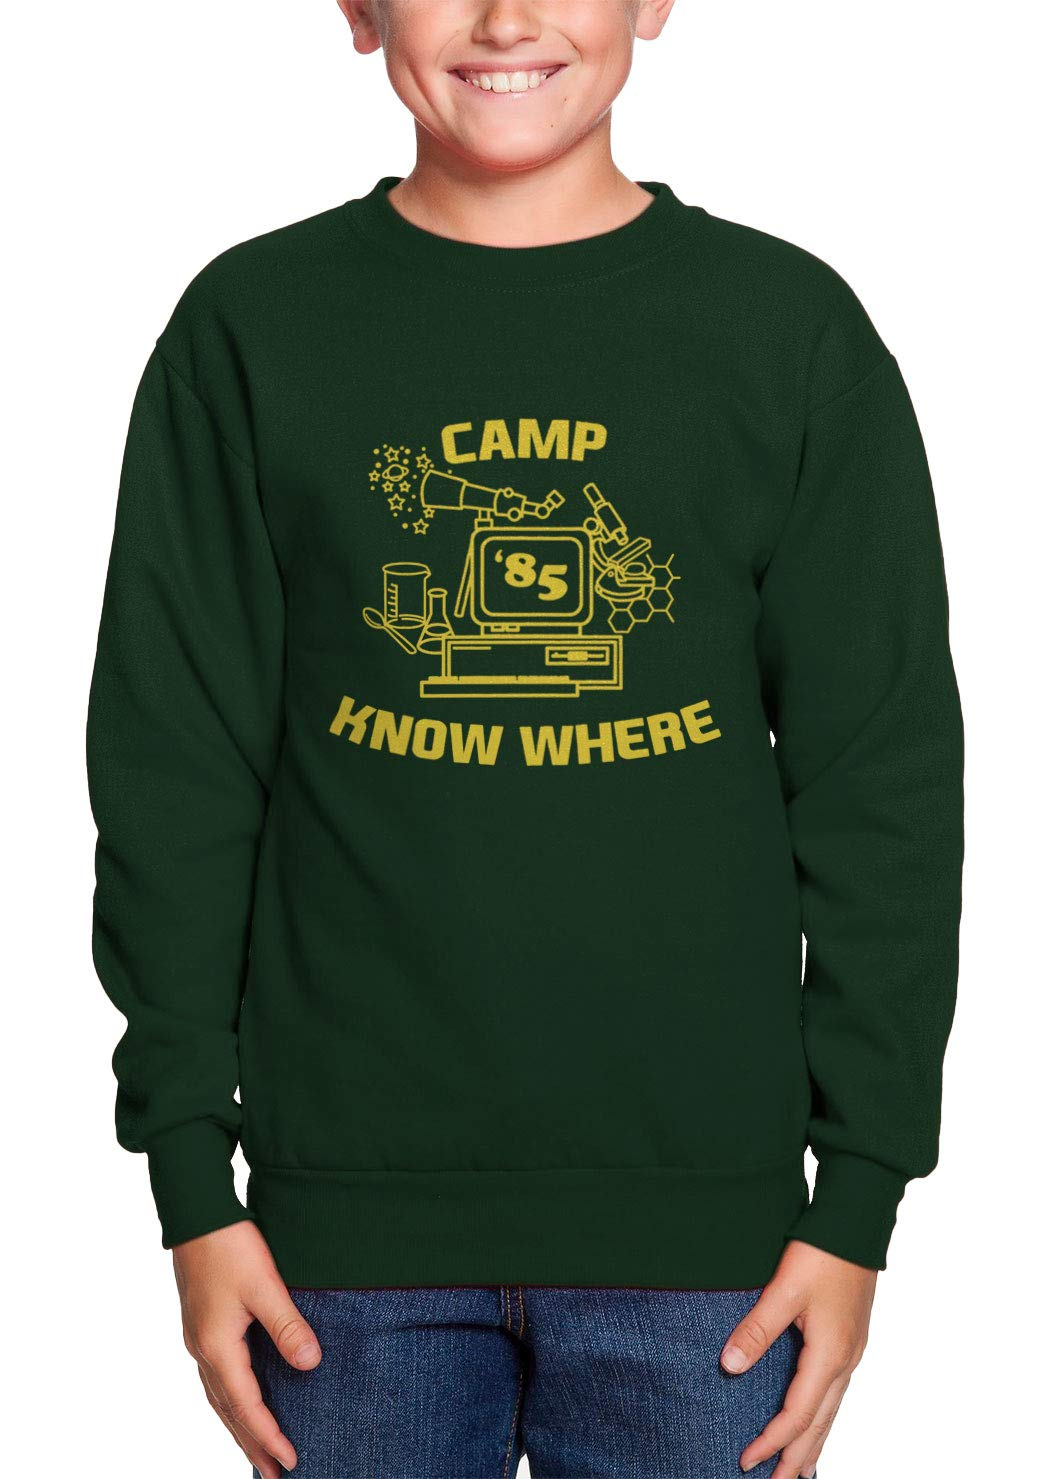 HAASE UNLIMITED Camp Know Where '85 - Strange TV Show Youth Fleece Crewneck Sweater (Forest Green, Large)